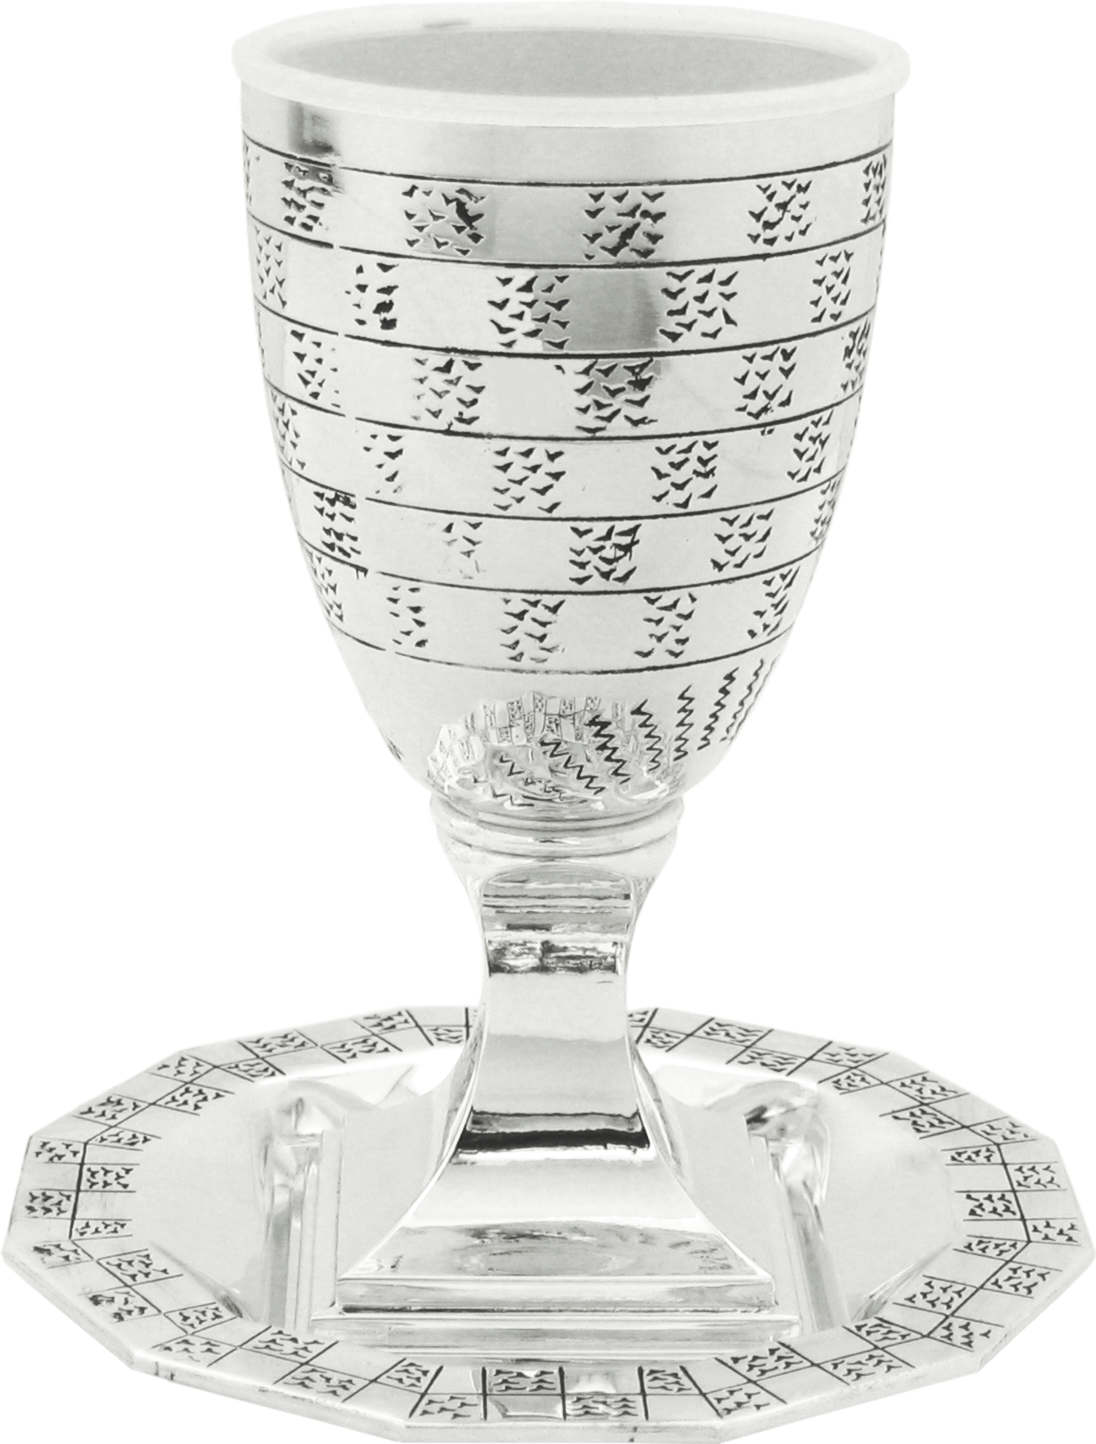 Nickel Kiddush Cup With Saucer- Breslev And Nachman Motif